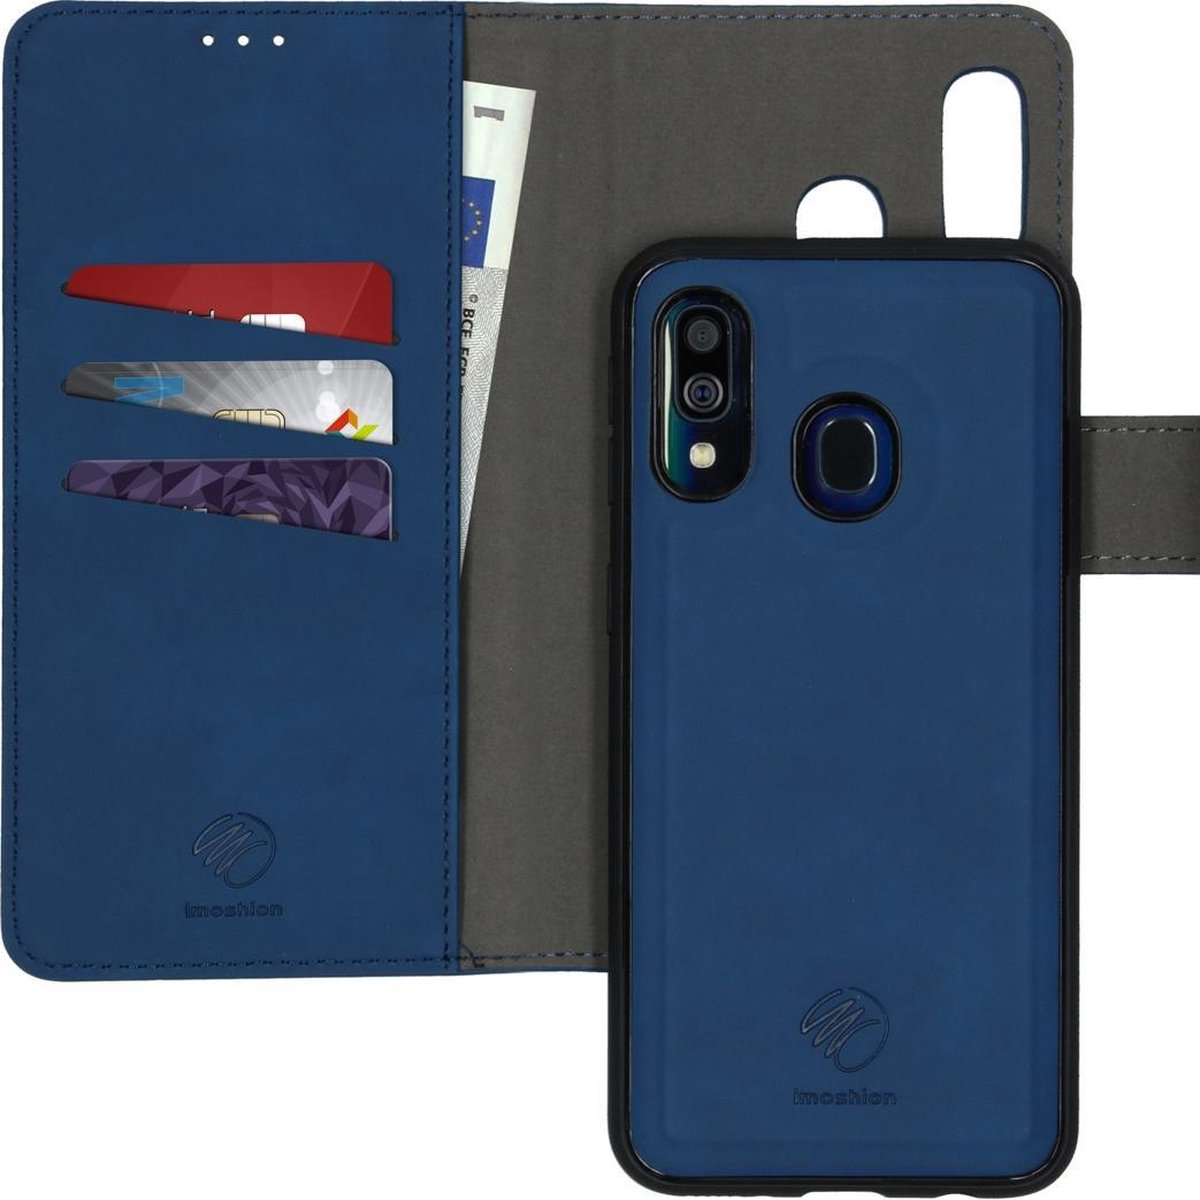 Afbeelding van product iMoshion Uitneembare 2-in-1 Luxe Booktype Samsung Galaxy A40 hoesje - Donkerblauw